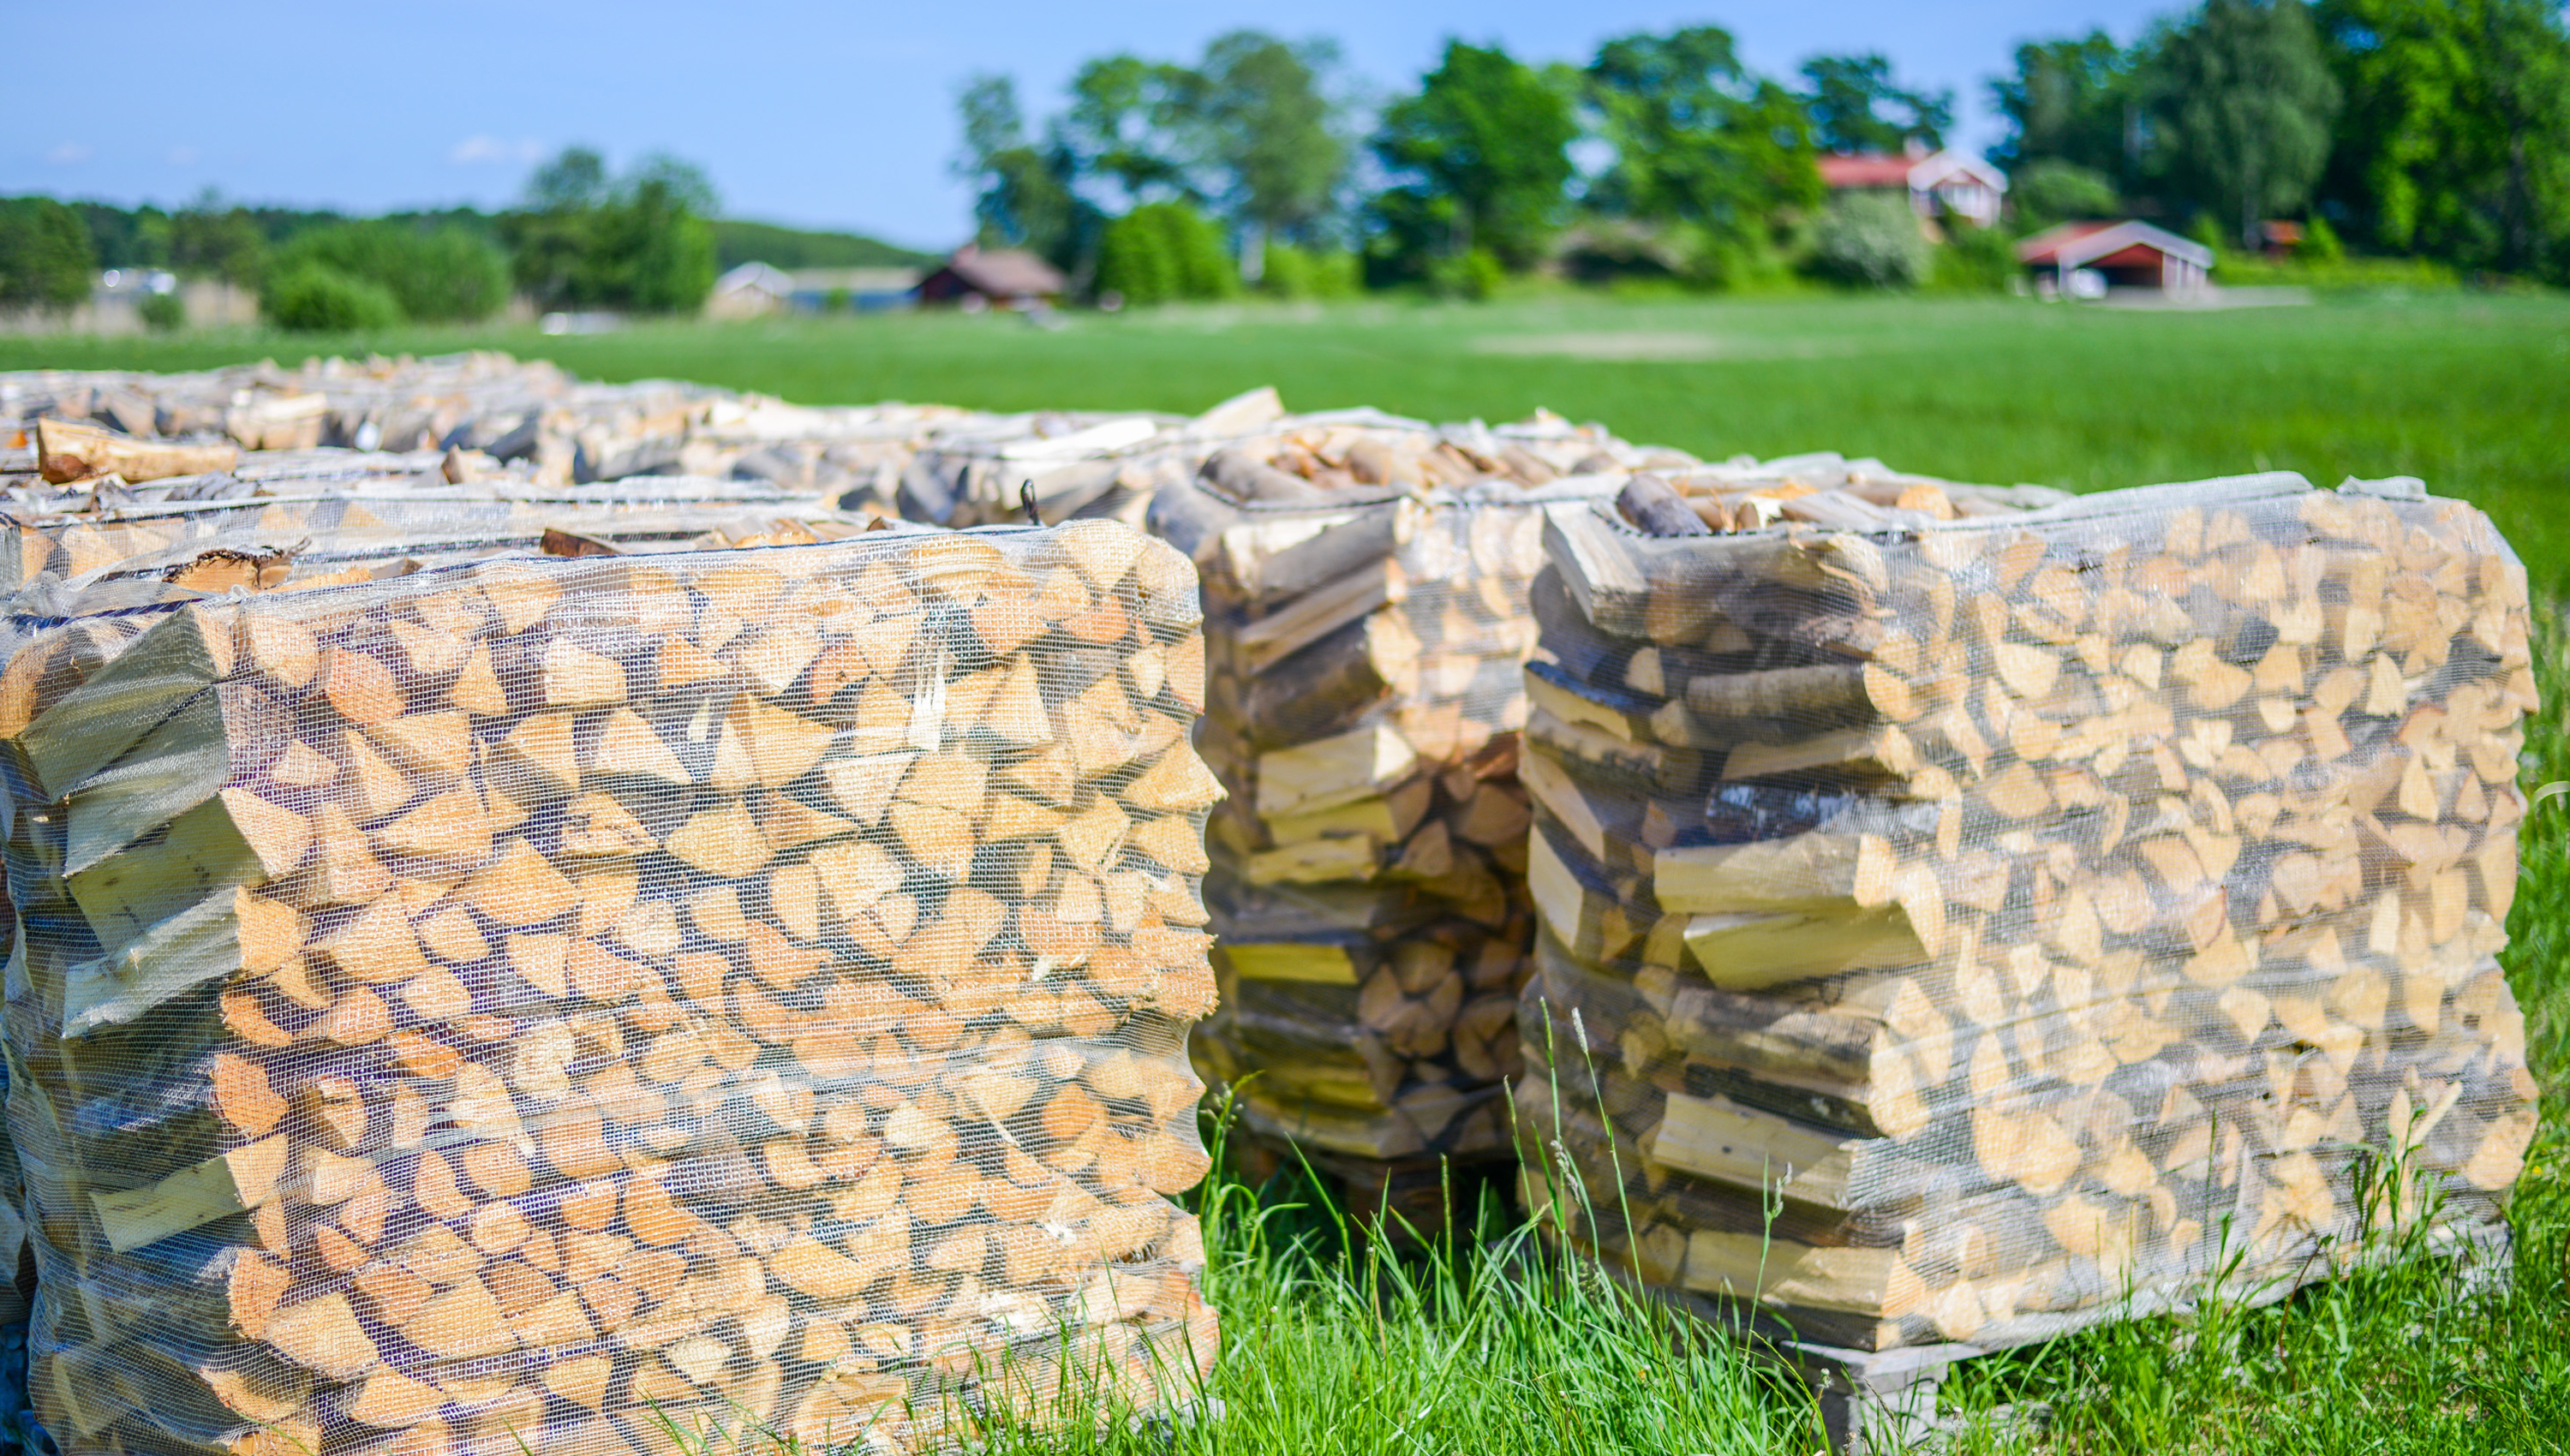 Overview of piles of firewood for sale